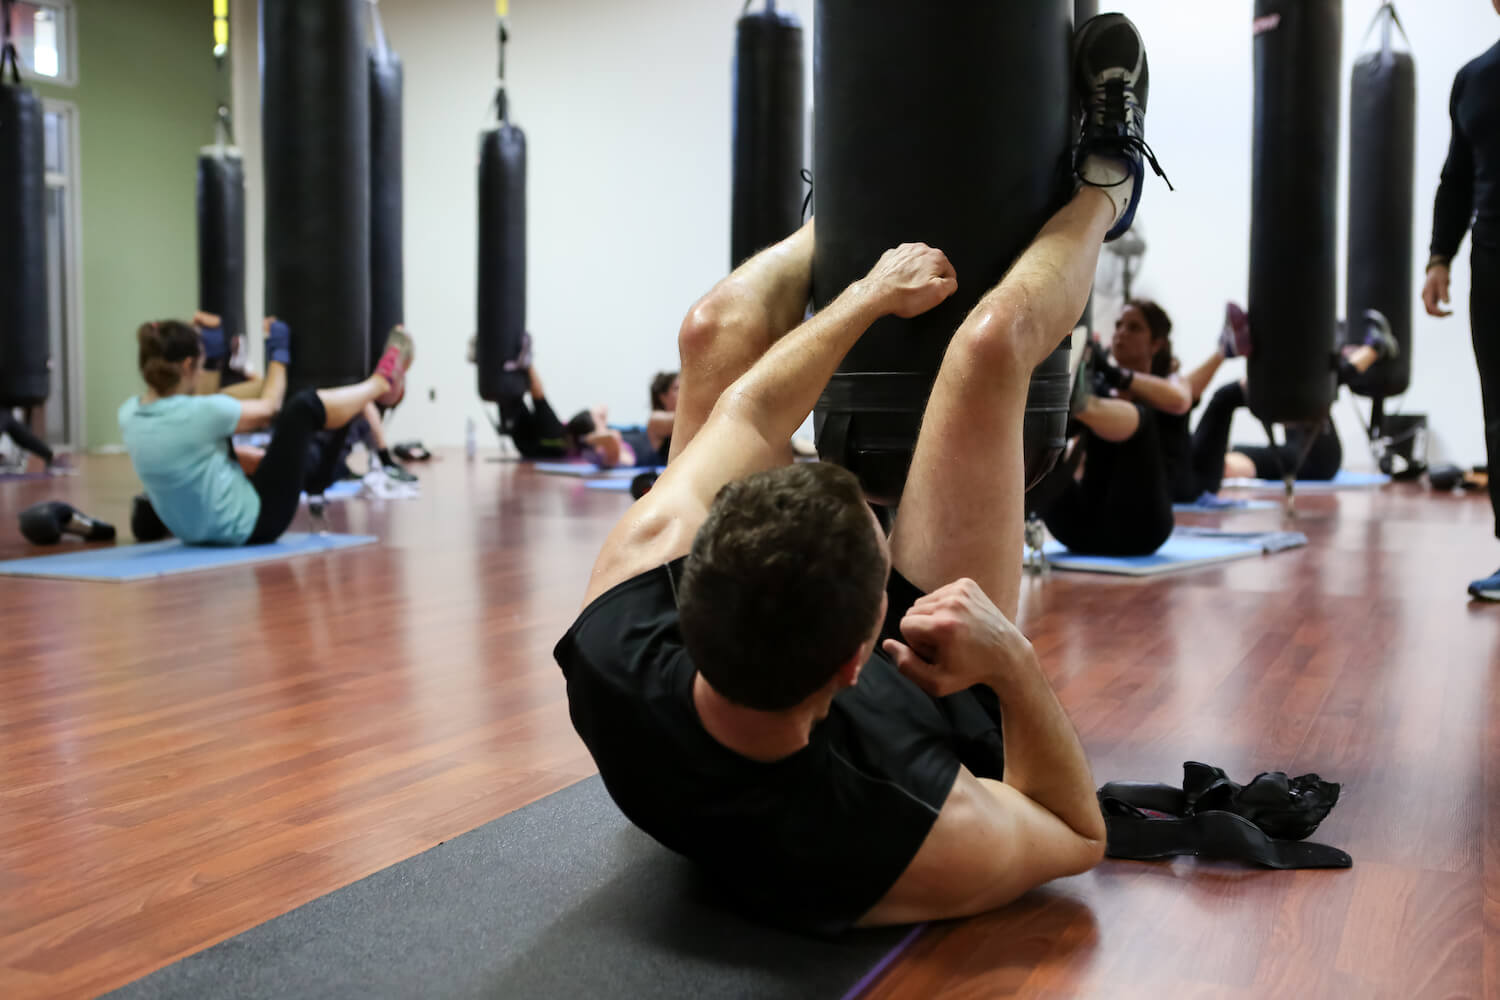 Kickboxing:Curcuits class at Tao San Fit-Boxing & Self-Defense, Santa Cruz.jpg